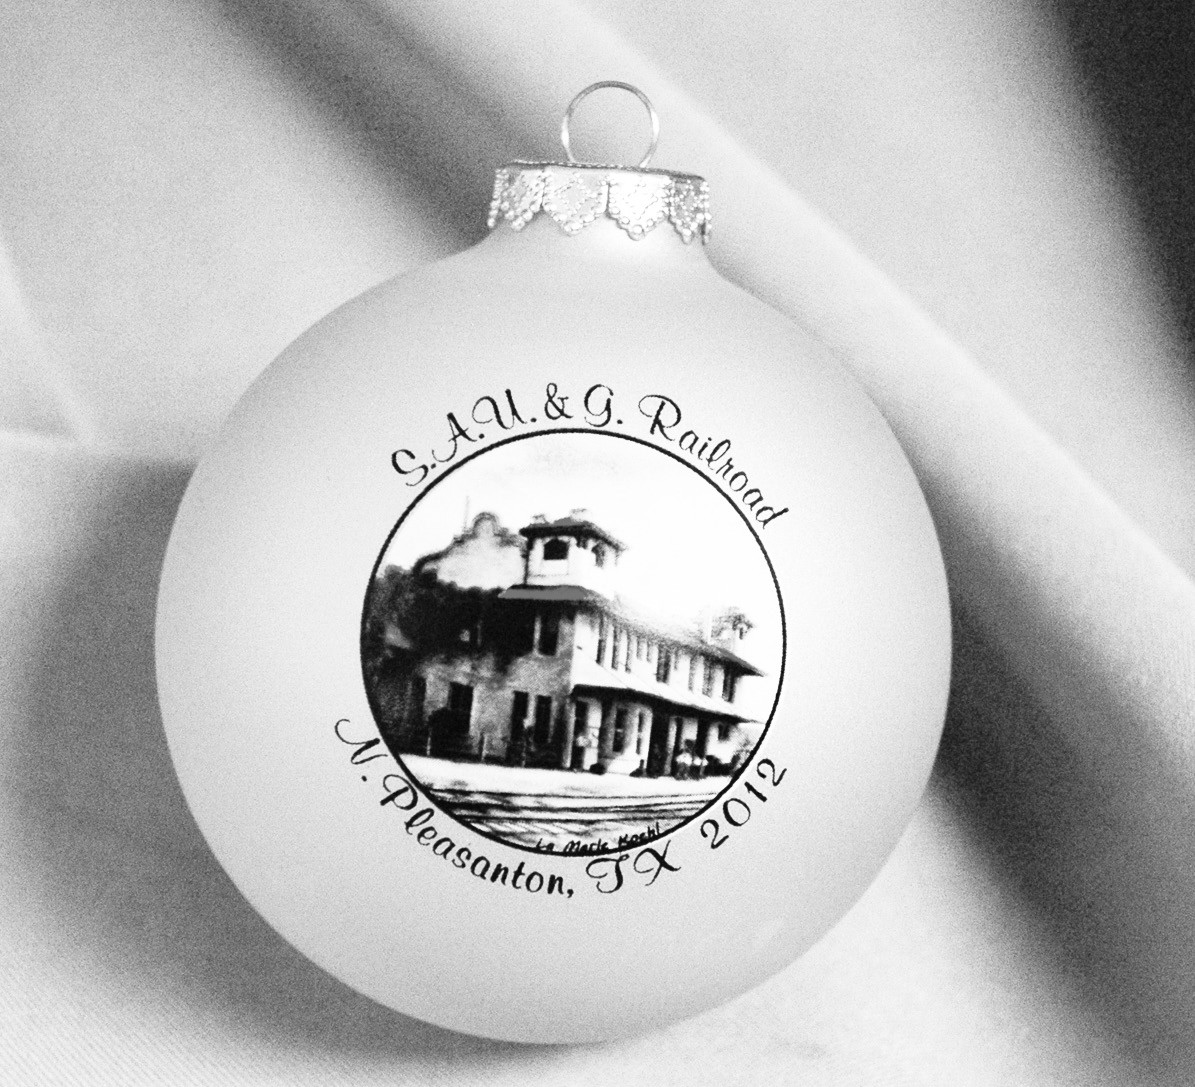 2012 Atascosa County Historical Commission ornament is available.